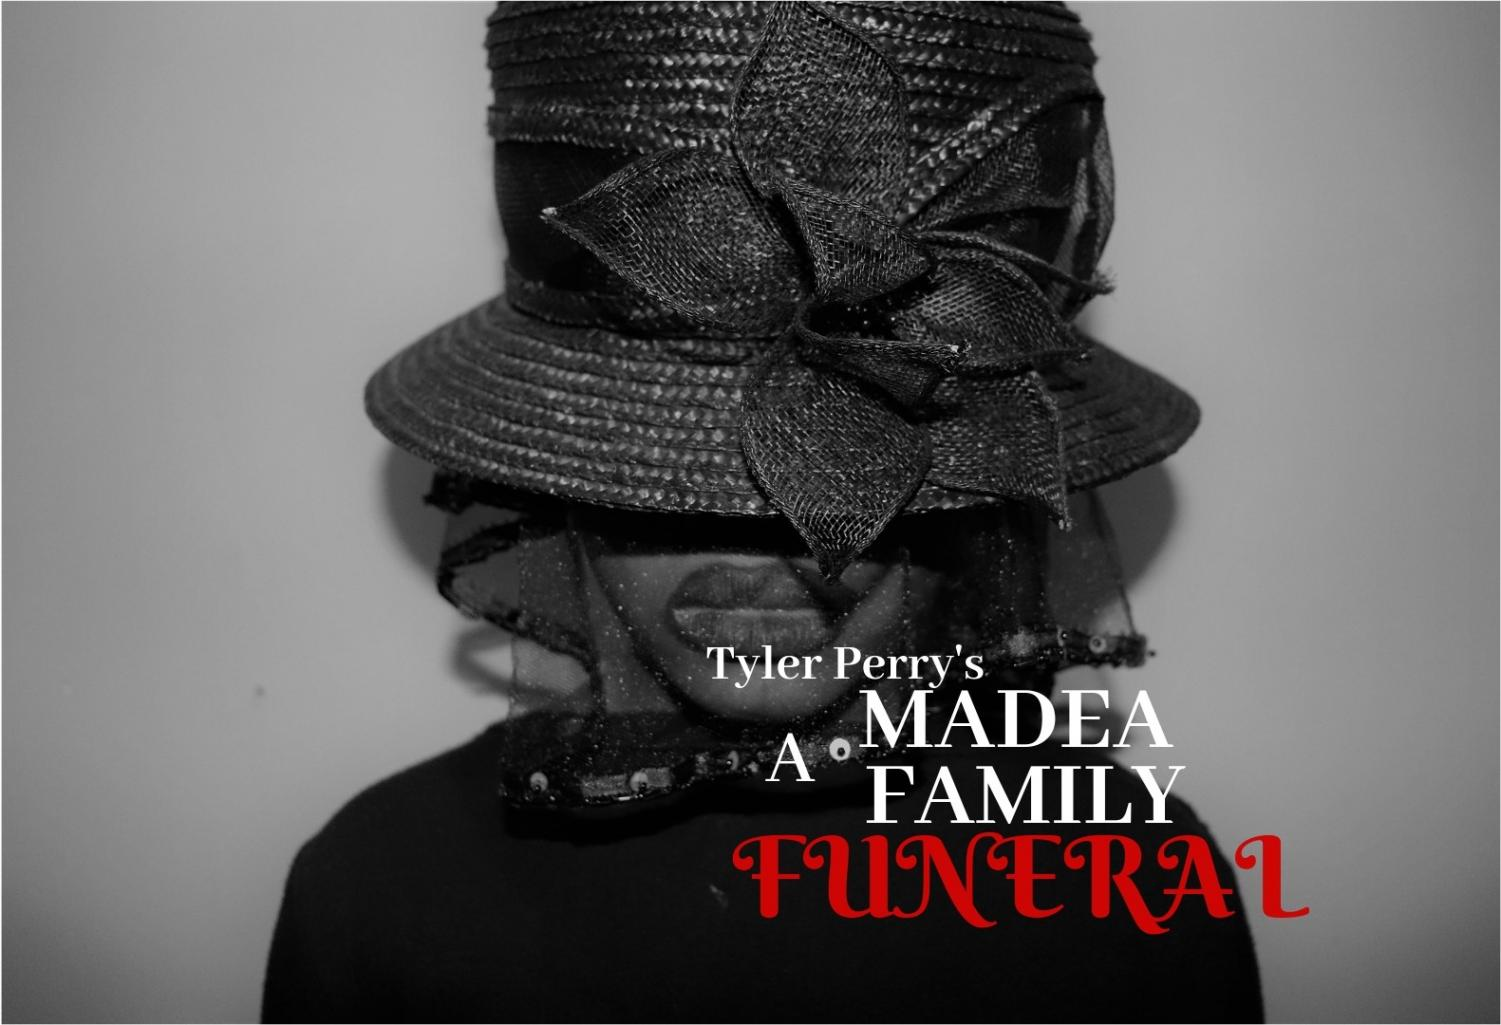 Tyler Perry surprised fans once more with his last performance as Madea. The movie touched on issues including domestic violence and watched as Madea and her friends coped with the situation. This recreation mirrors the cover photo of Tyler Perry's character, Madea, as he hinted at the future of the beloved character.